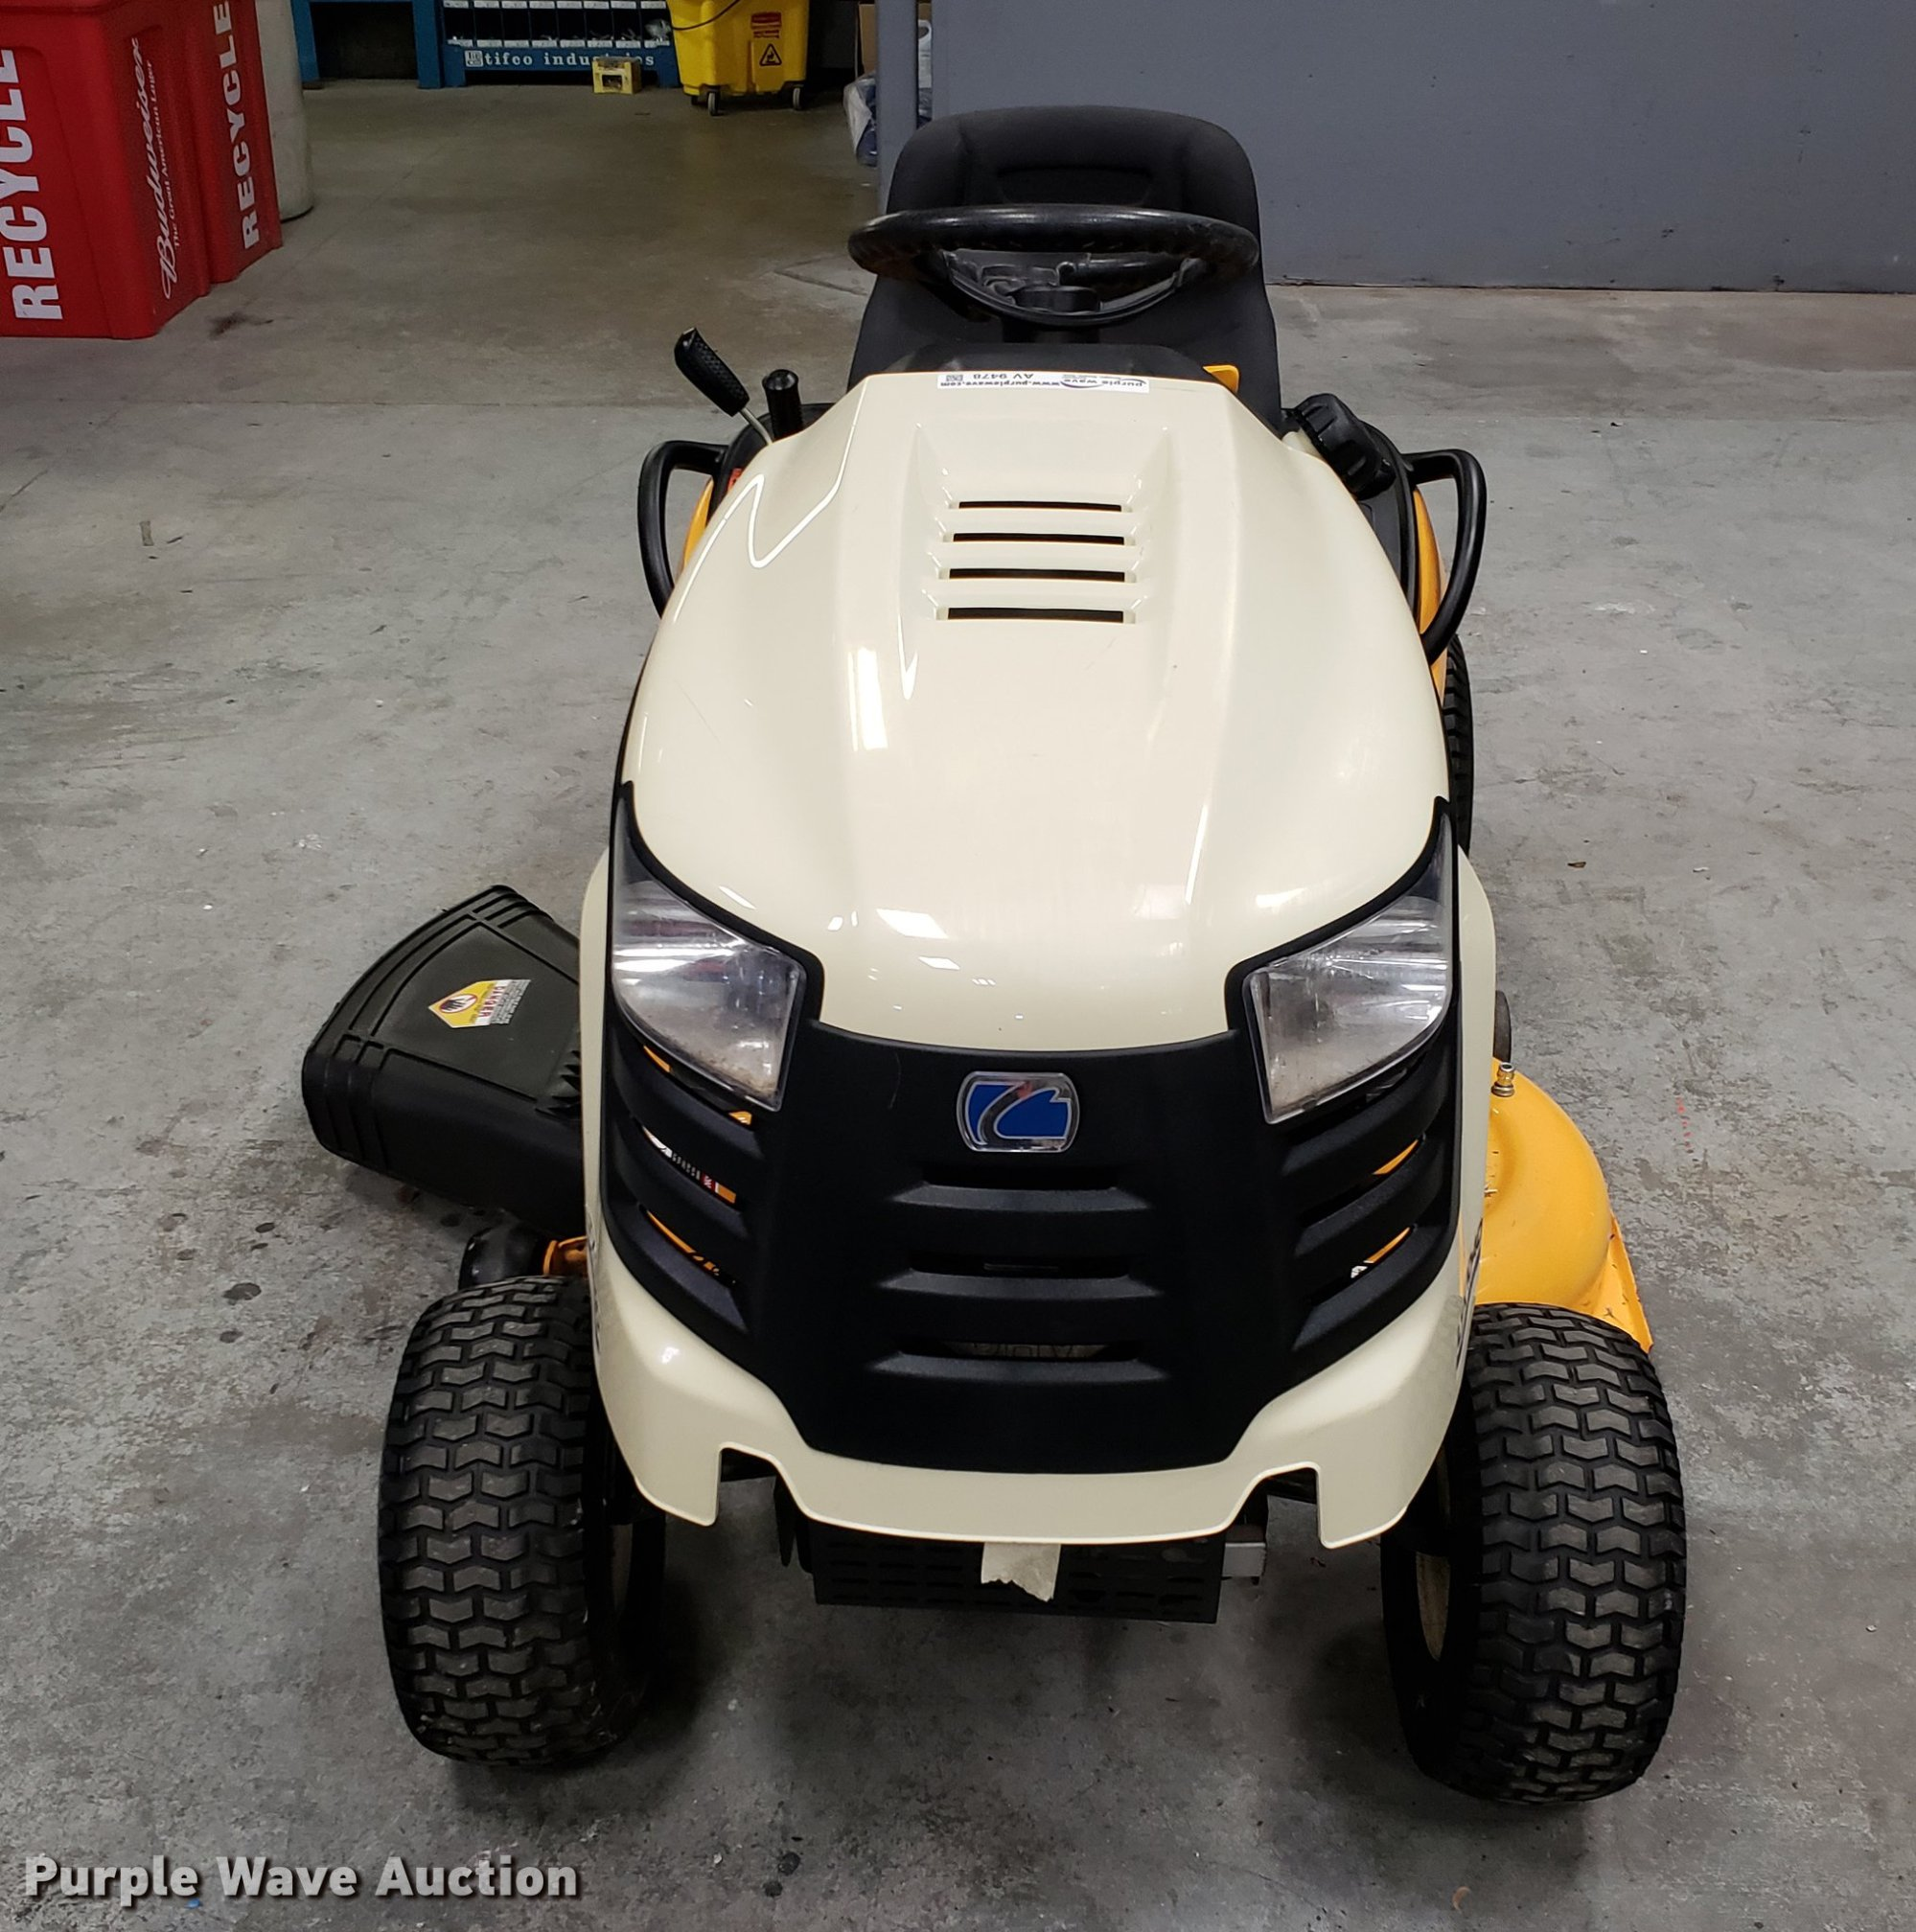 hight resolution of  ltx1040 lawn mower full size in new window